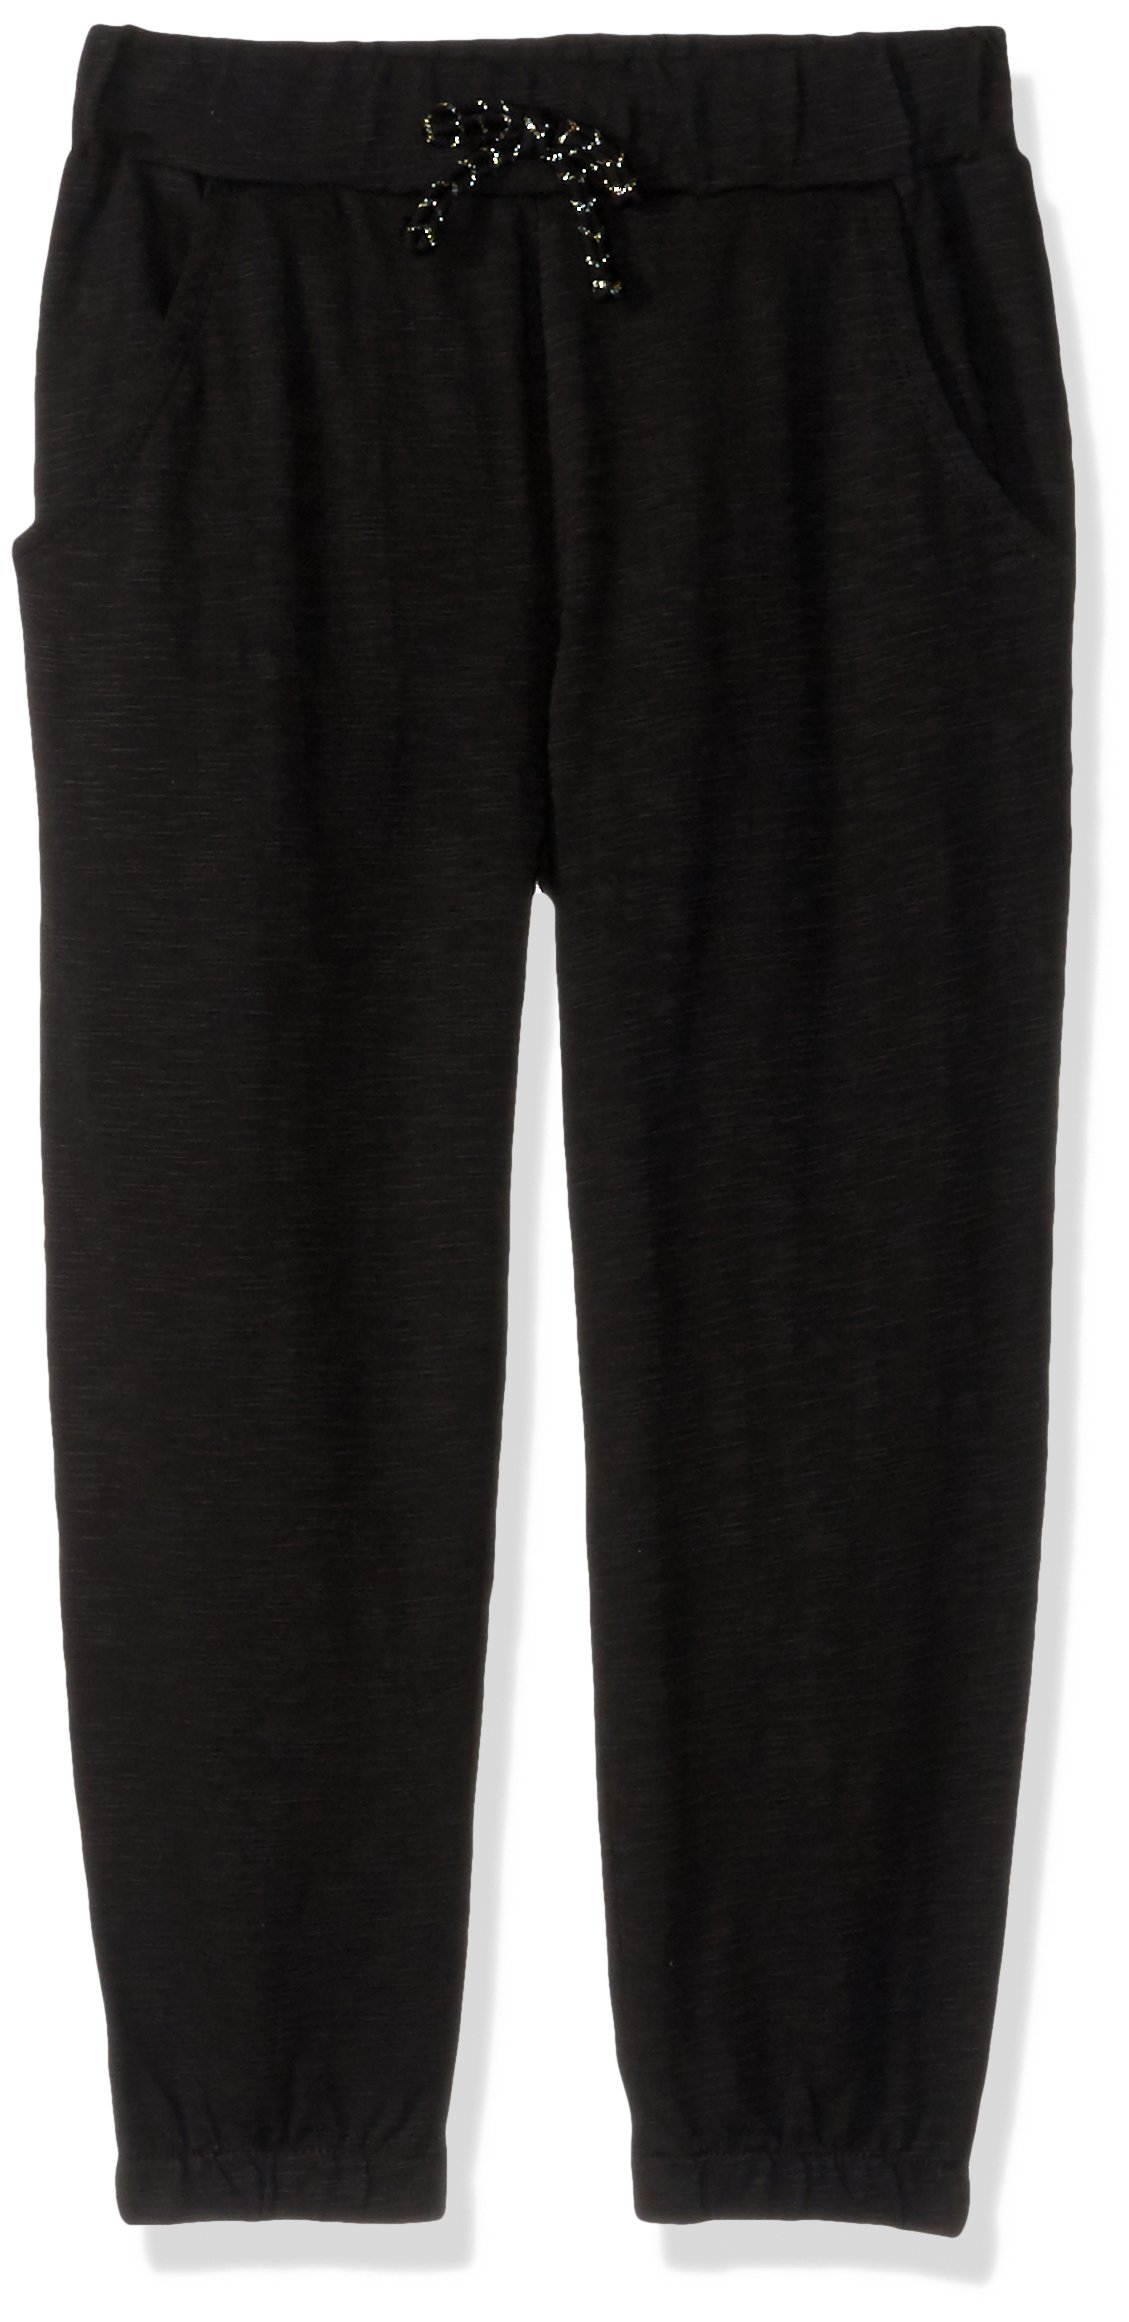 Gymboree Big Girls' Pull-on Knit Joggers, Black Slub, 7